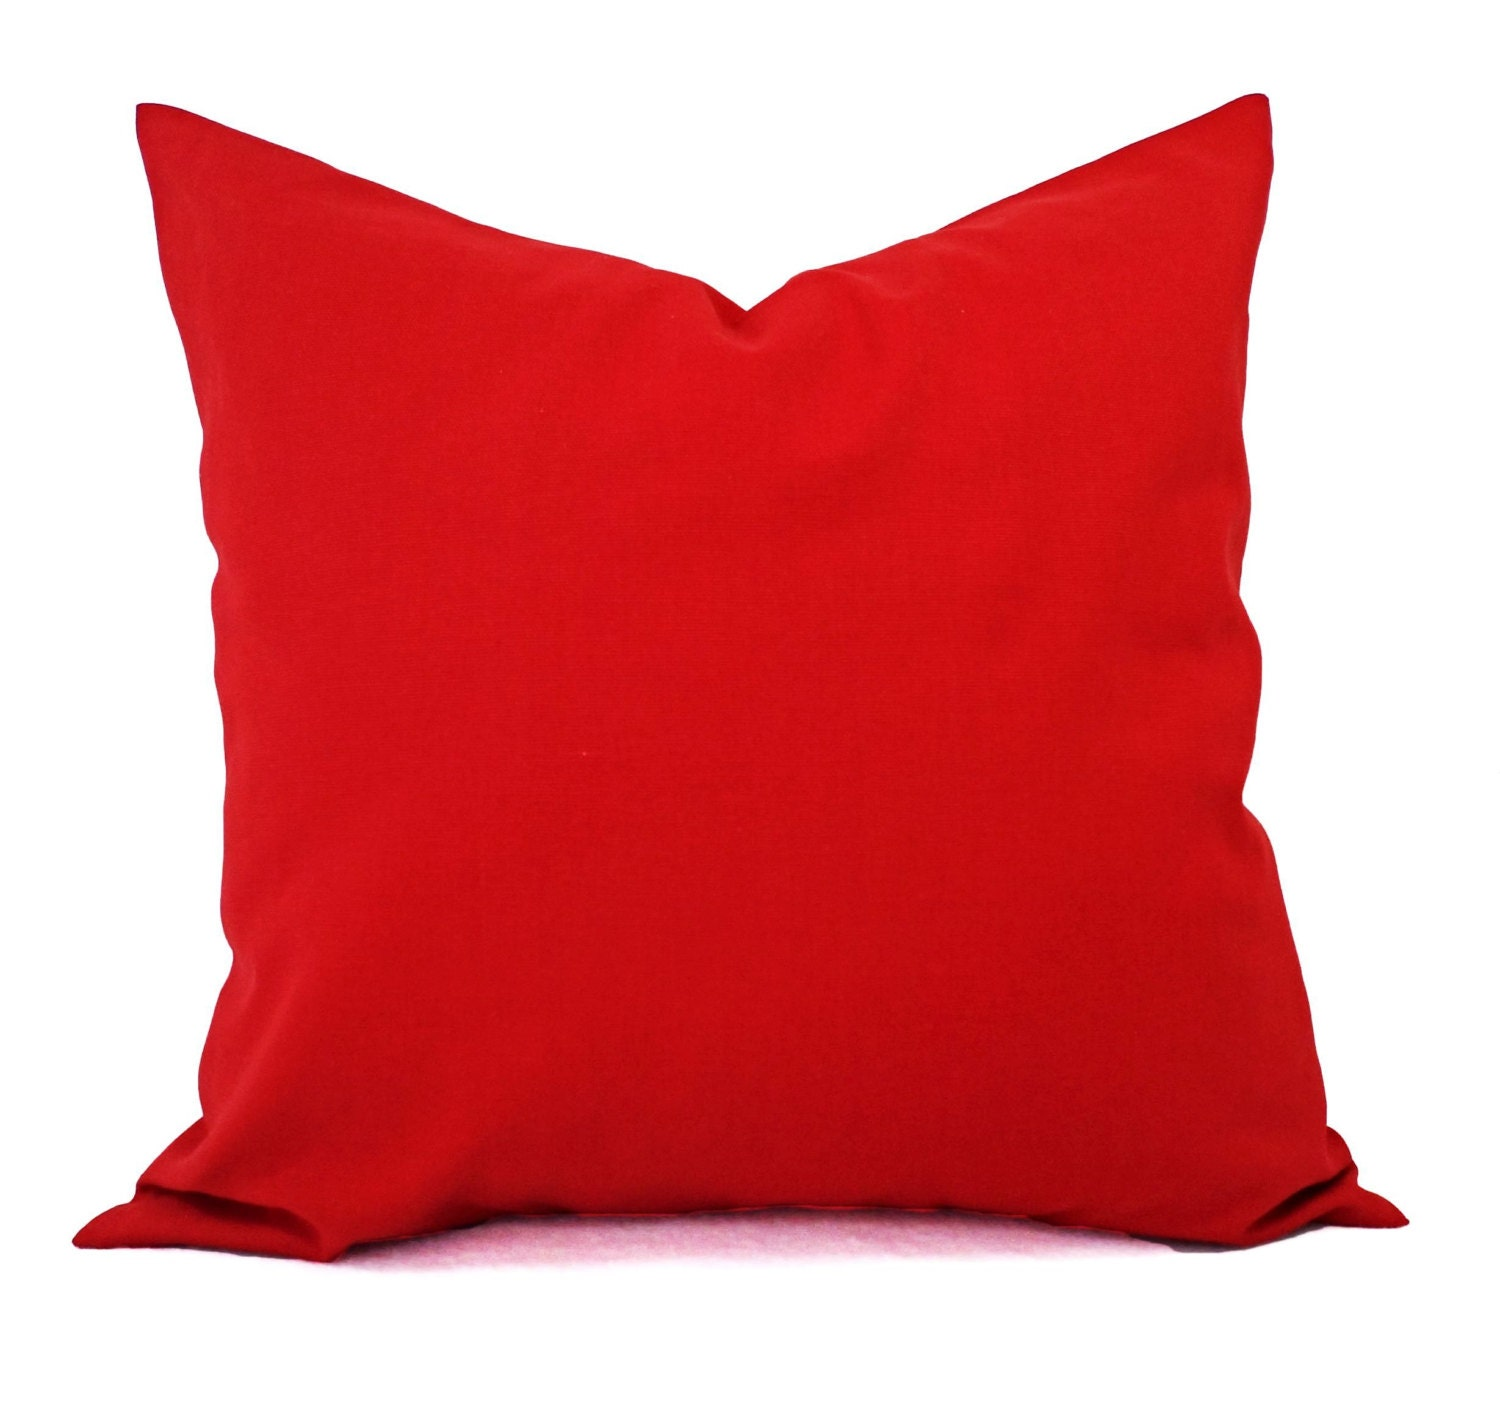 Decorative Pillows For Red Sofa : Solid Red Pillow Covers Red Couch Pillow Covers Two Throw